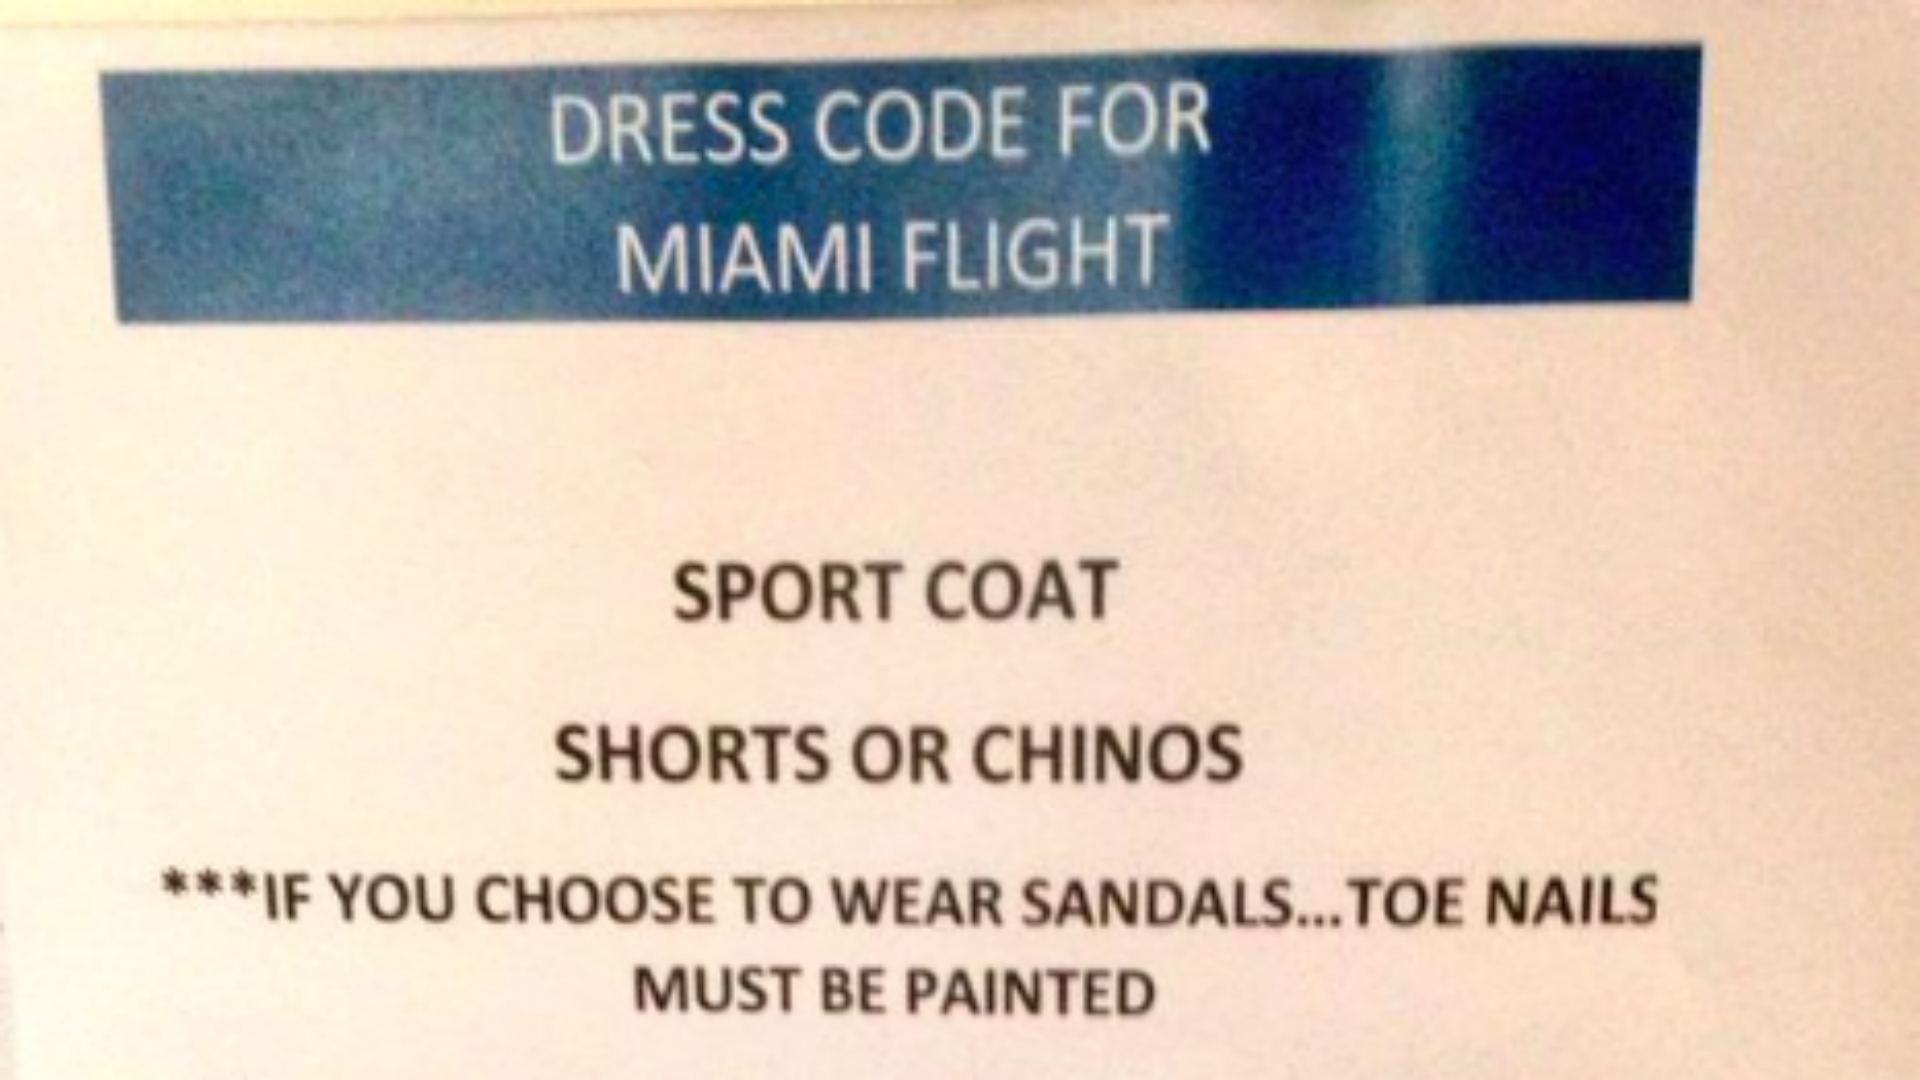 Cubs' dress code requires toenail polish